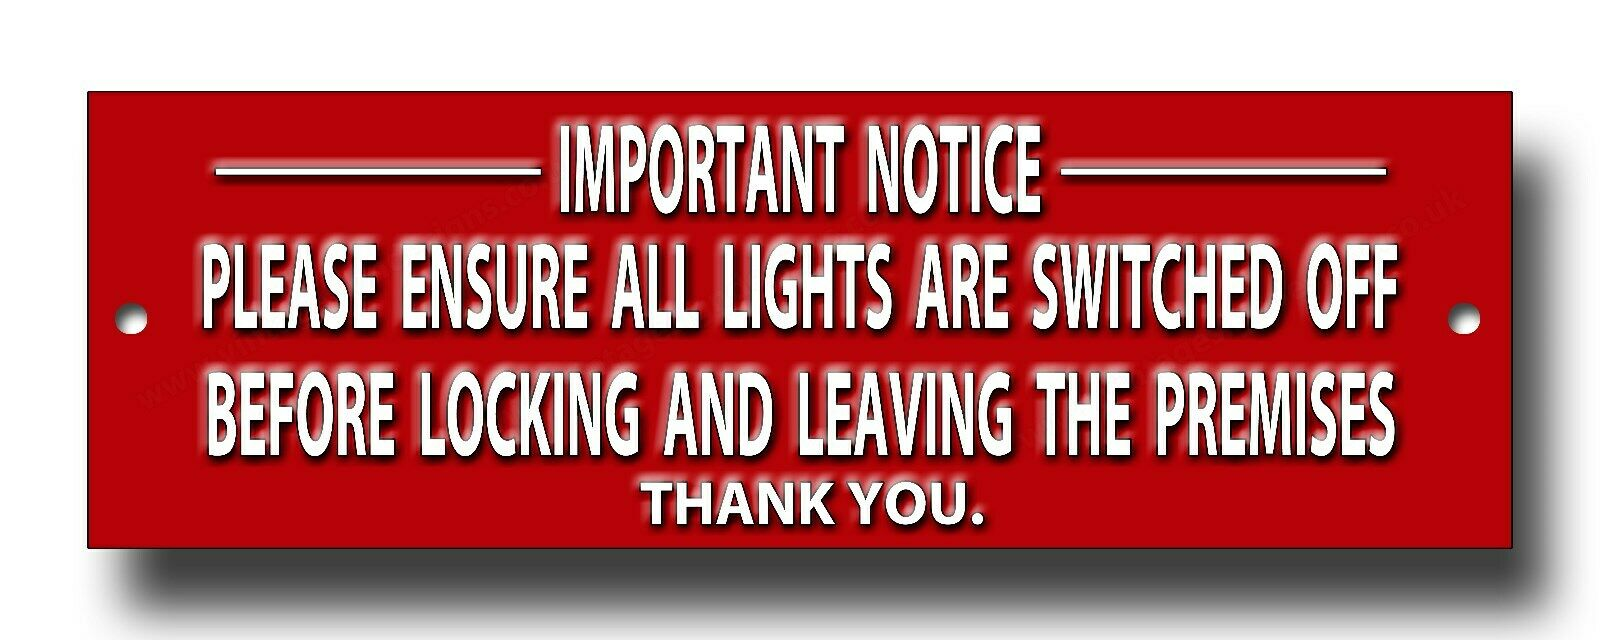 IMPORTANT NOTICE PLEASE ENSURE ALL LIGHTS ARE SWITCHED OFF METAL SIGN 8